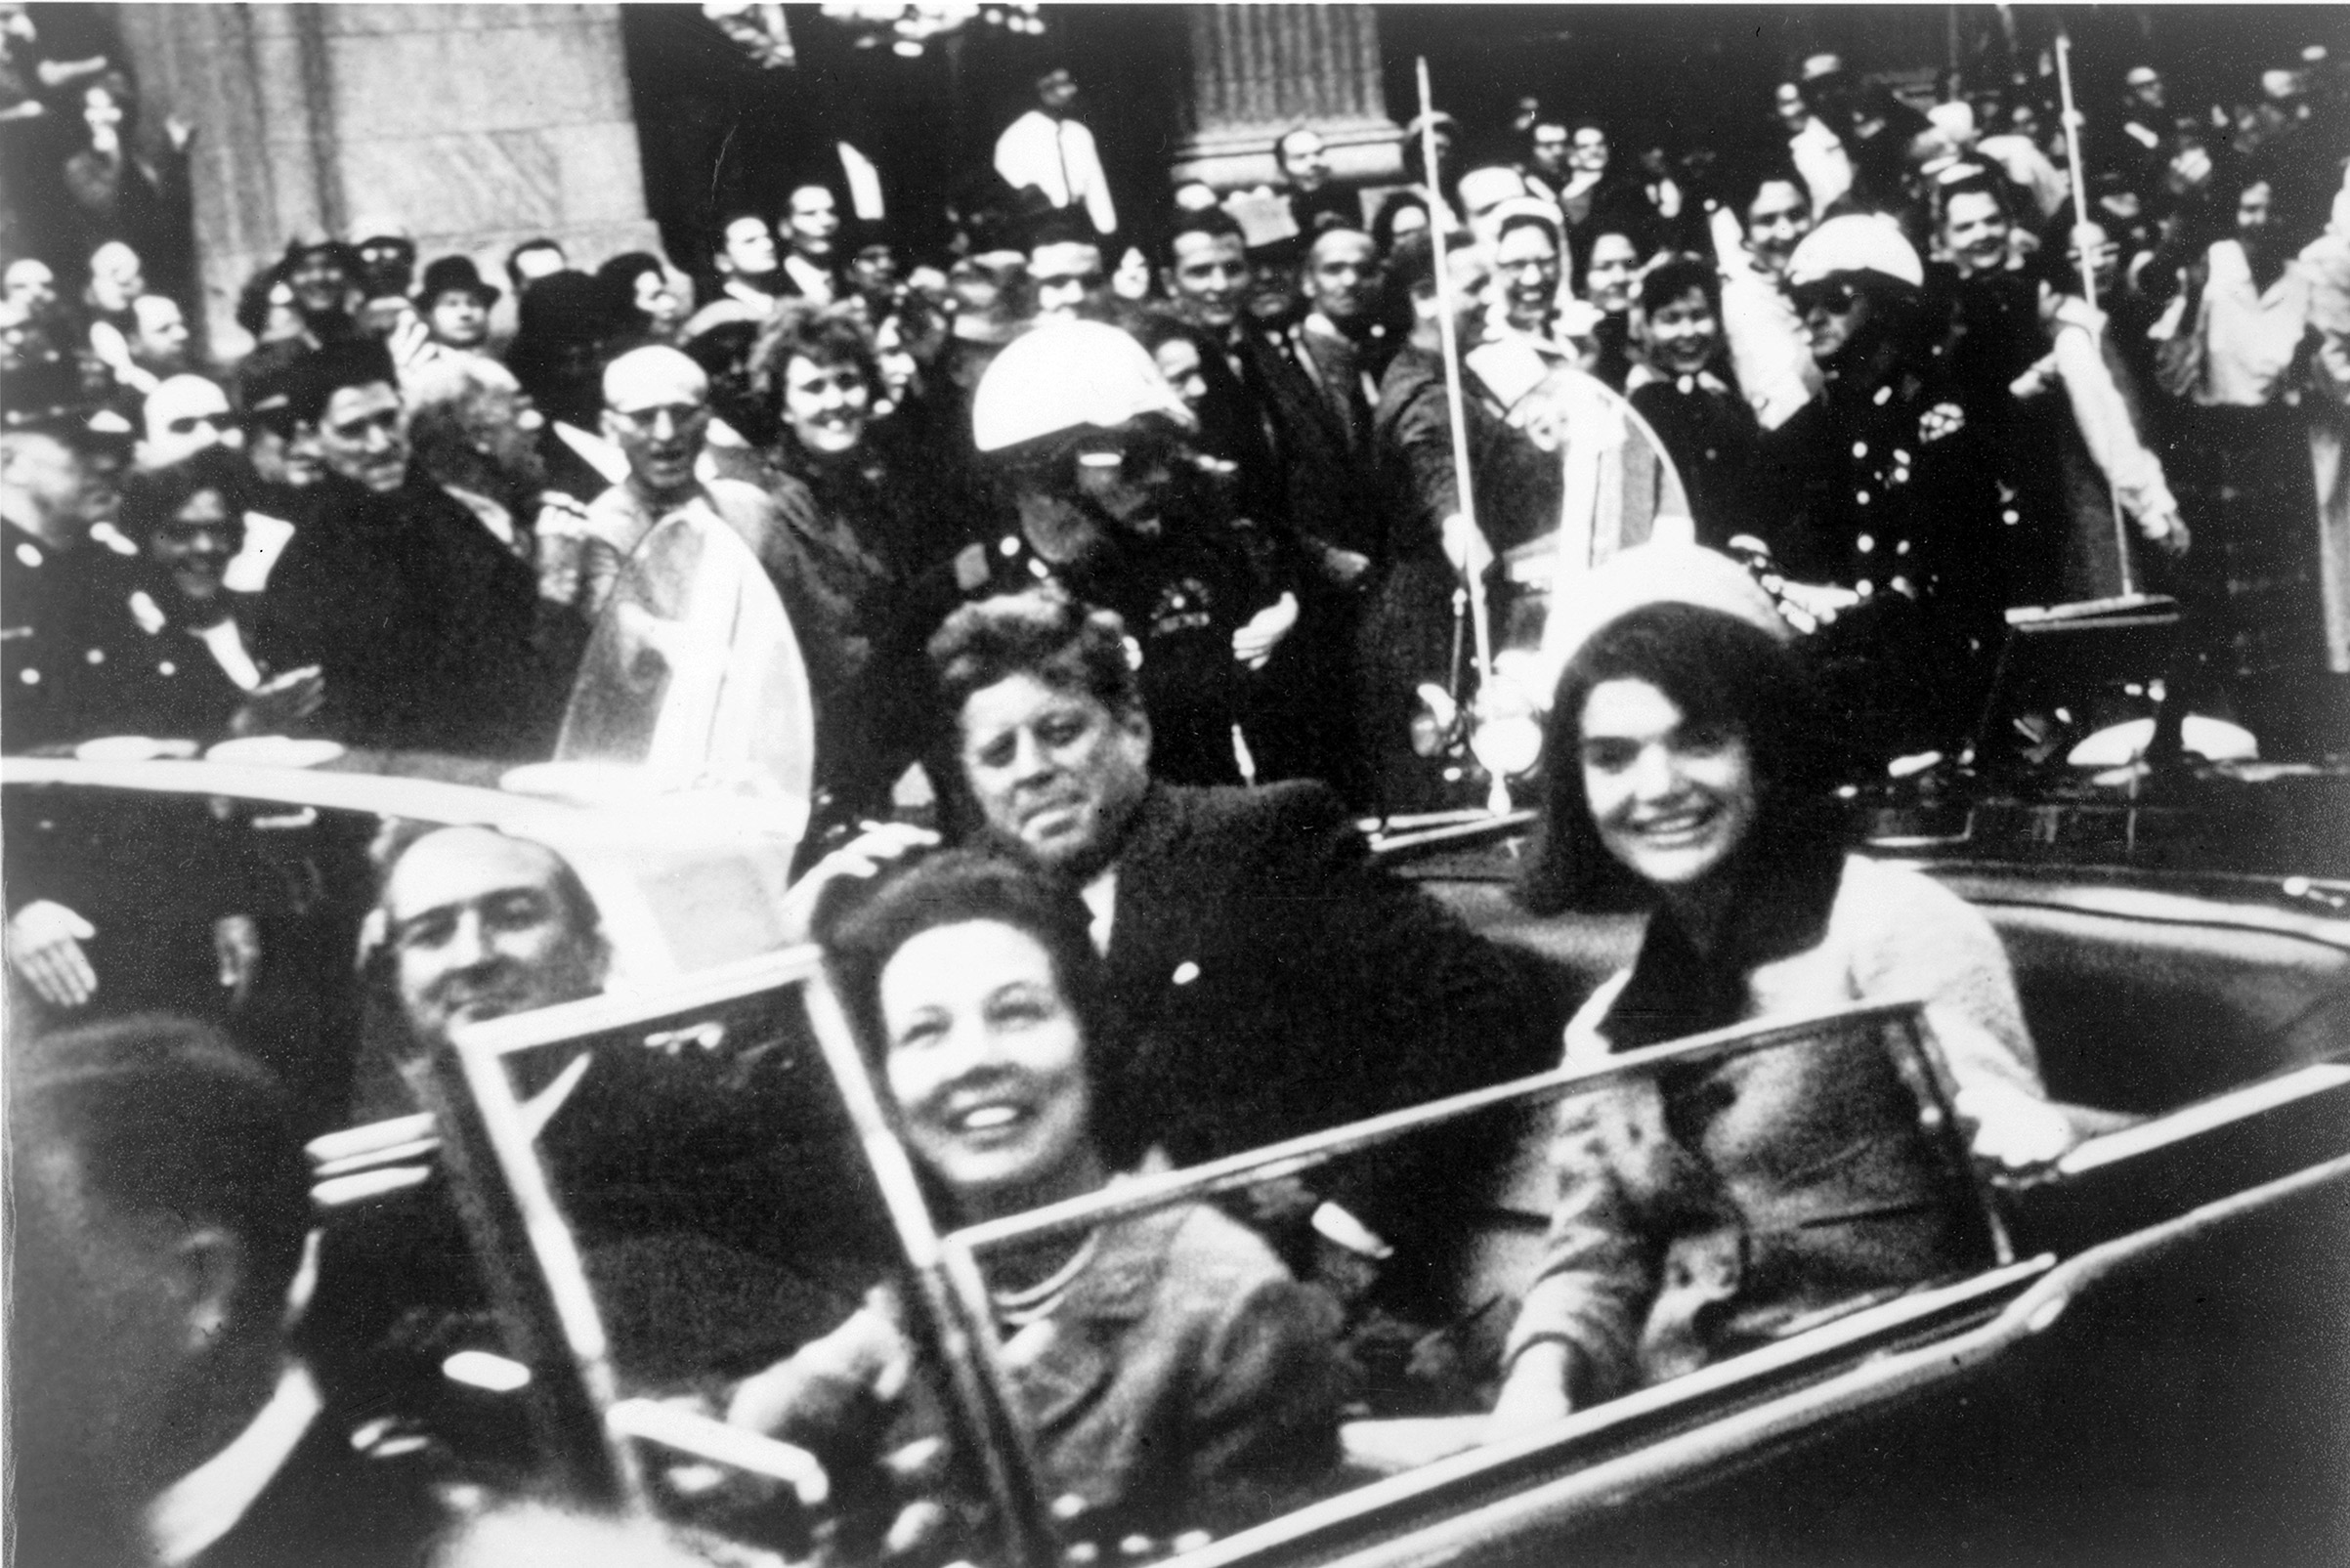 President John F. Kennedy and First Lady Jackie Onasis Kennedy in motorcade with  Texas Governor John Connally and his wife in motorcade on Nov. 22, 1963, in Dallas.